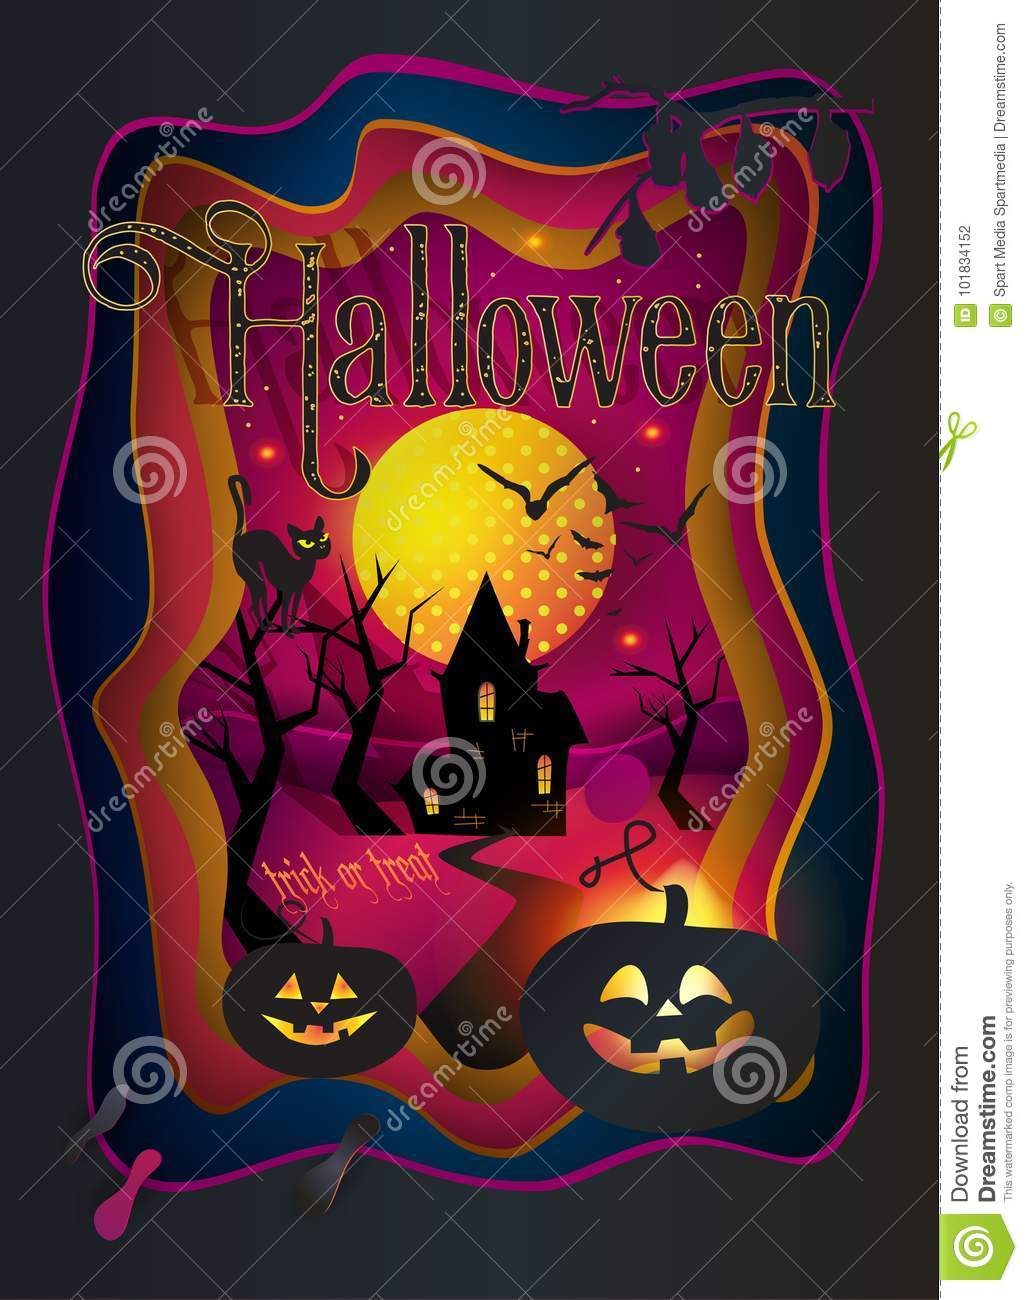 3d Halloween Background 2020 Halloween Trick Or Treat 2020 Party Invitation Vector Paper Art